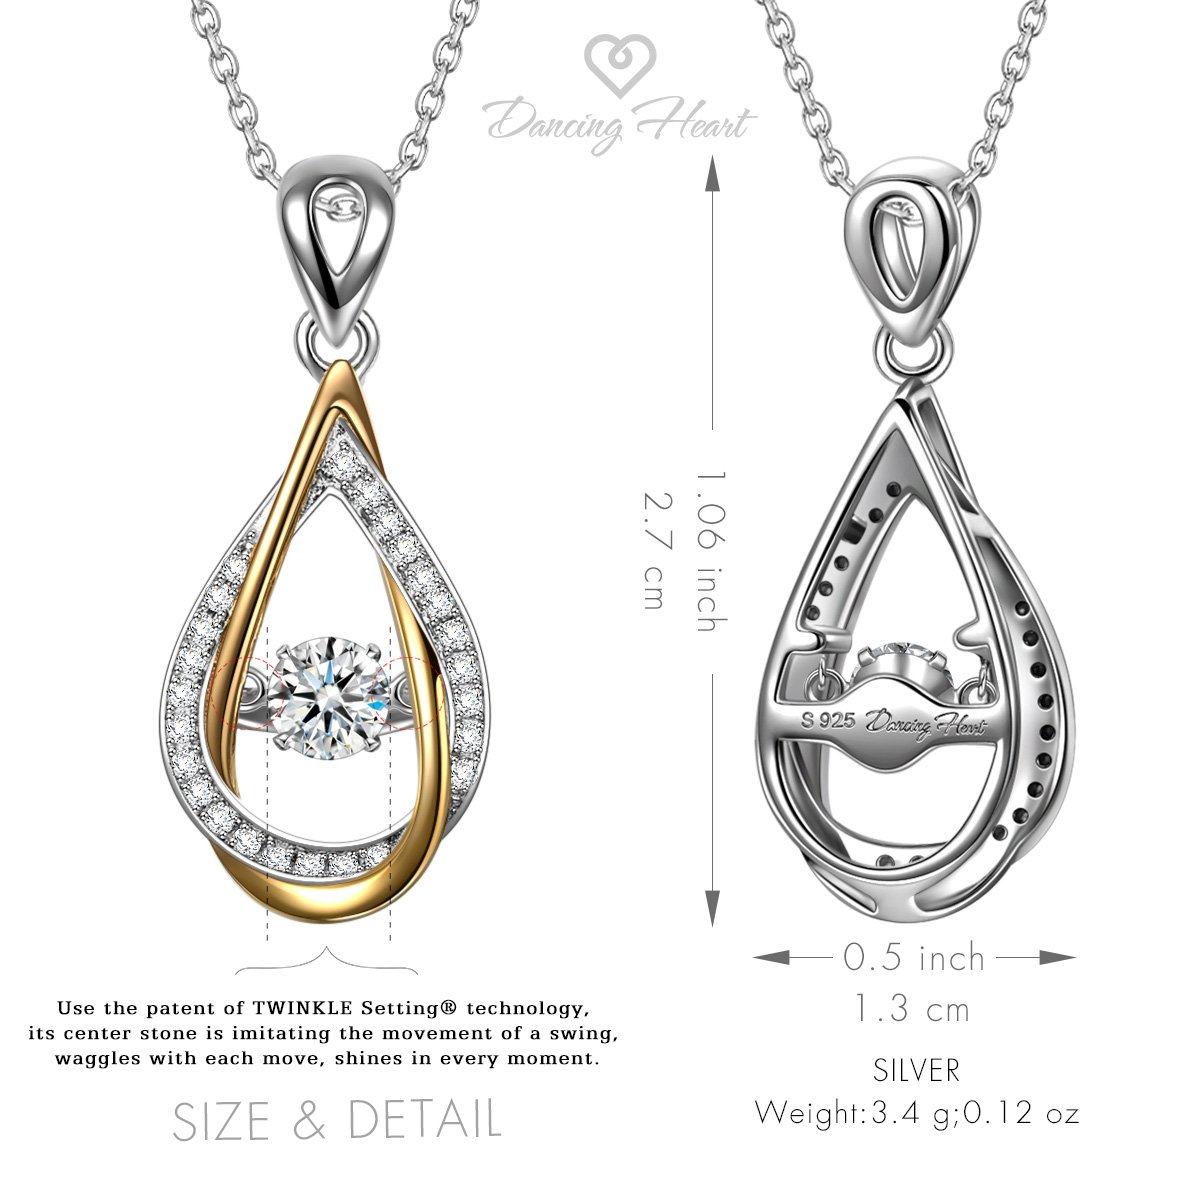 DANCING HEART 925 Sterling Silver Dancing Stone Necklaces for Women Jewelry Necklace for Her Swarovski Crystals Necklace Christmas Gifts Anniversary Birthday Gift for Mom Wife Girlfriend Daughter by DANCING HEART (Image #2)